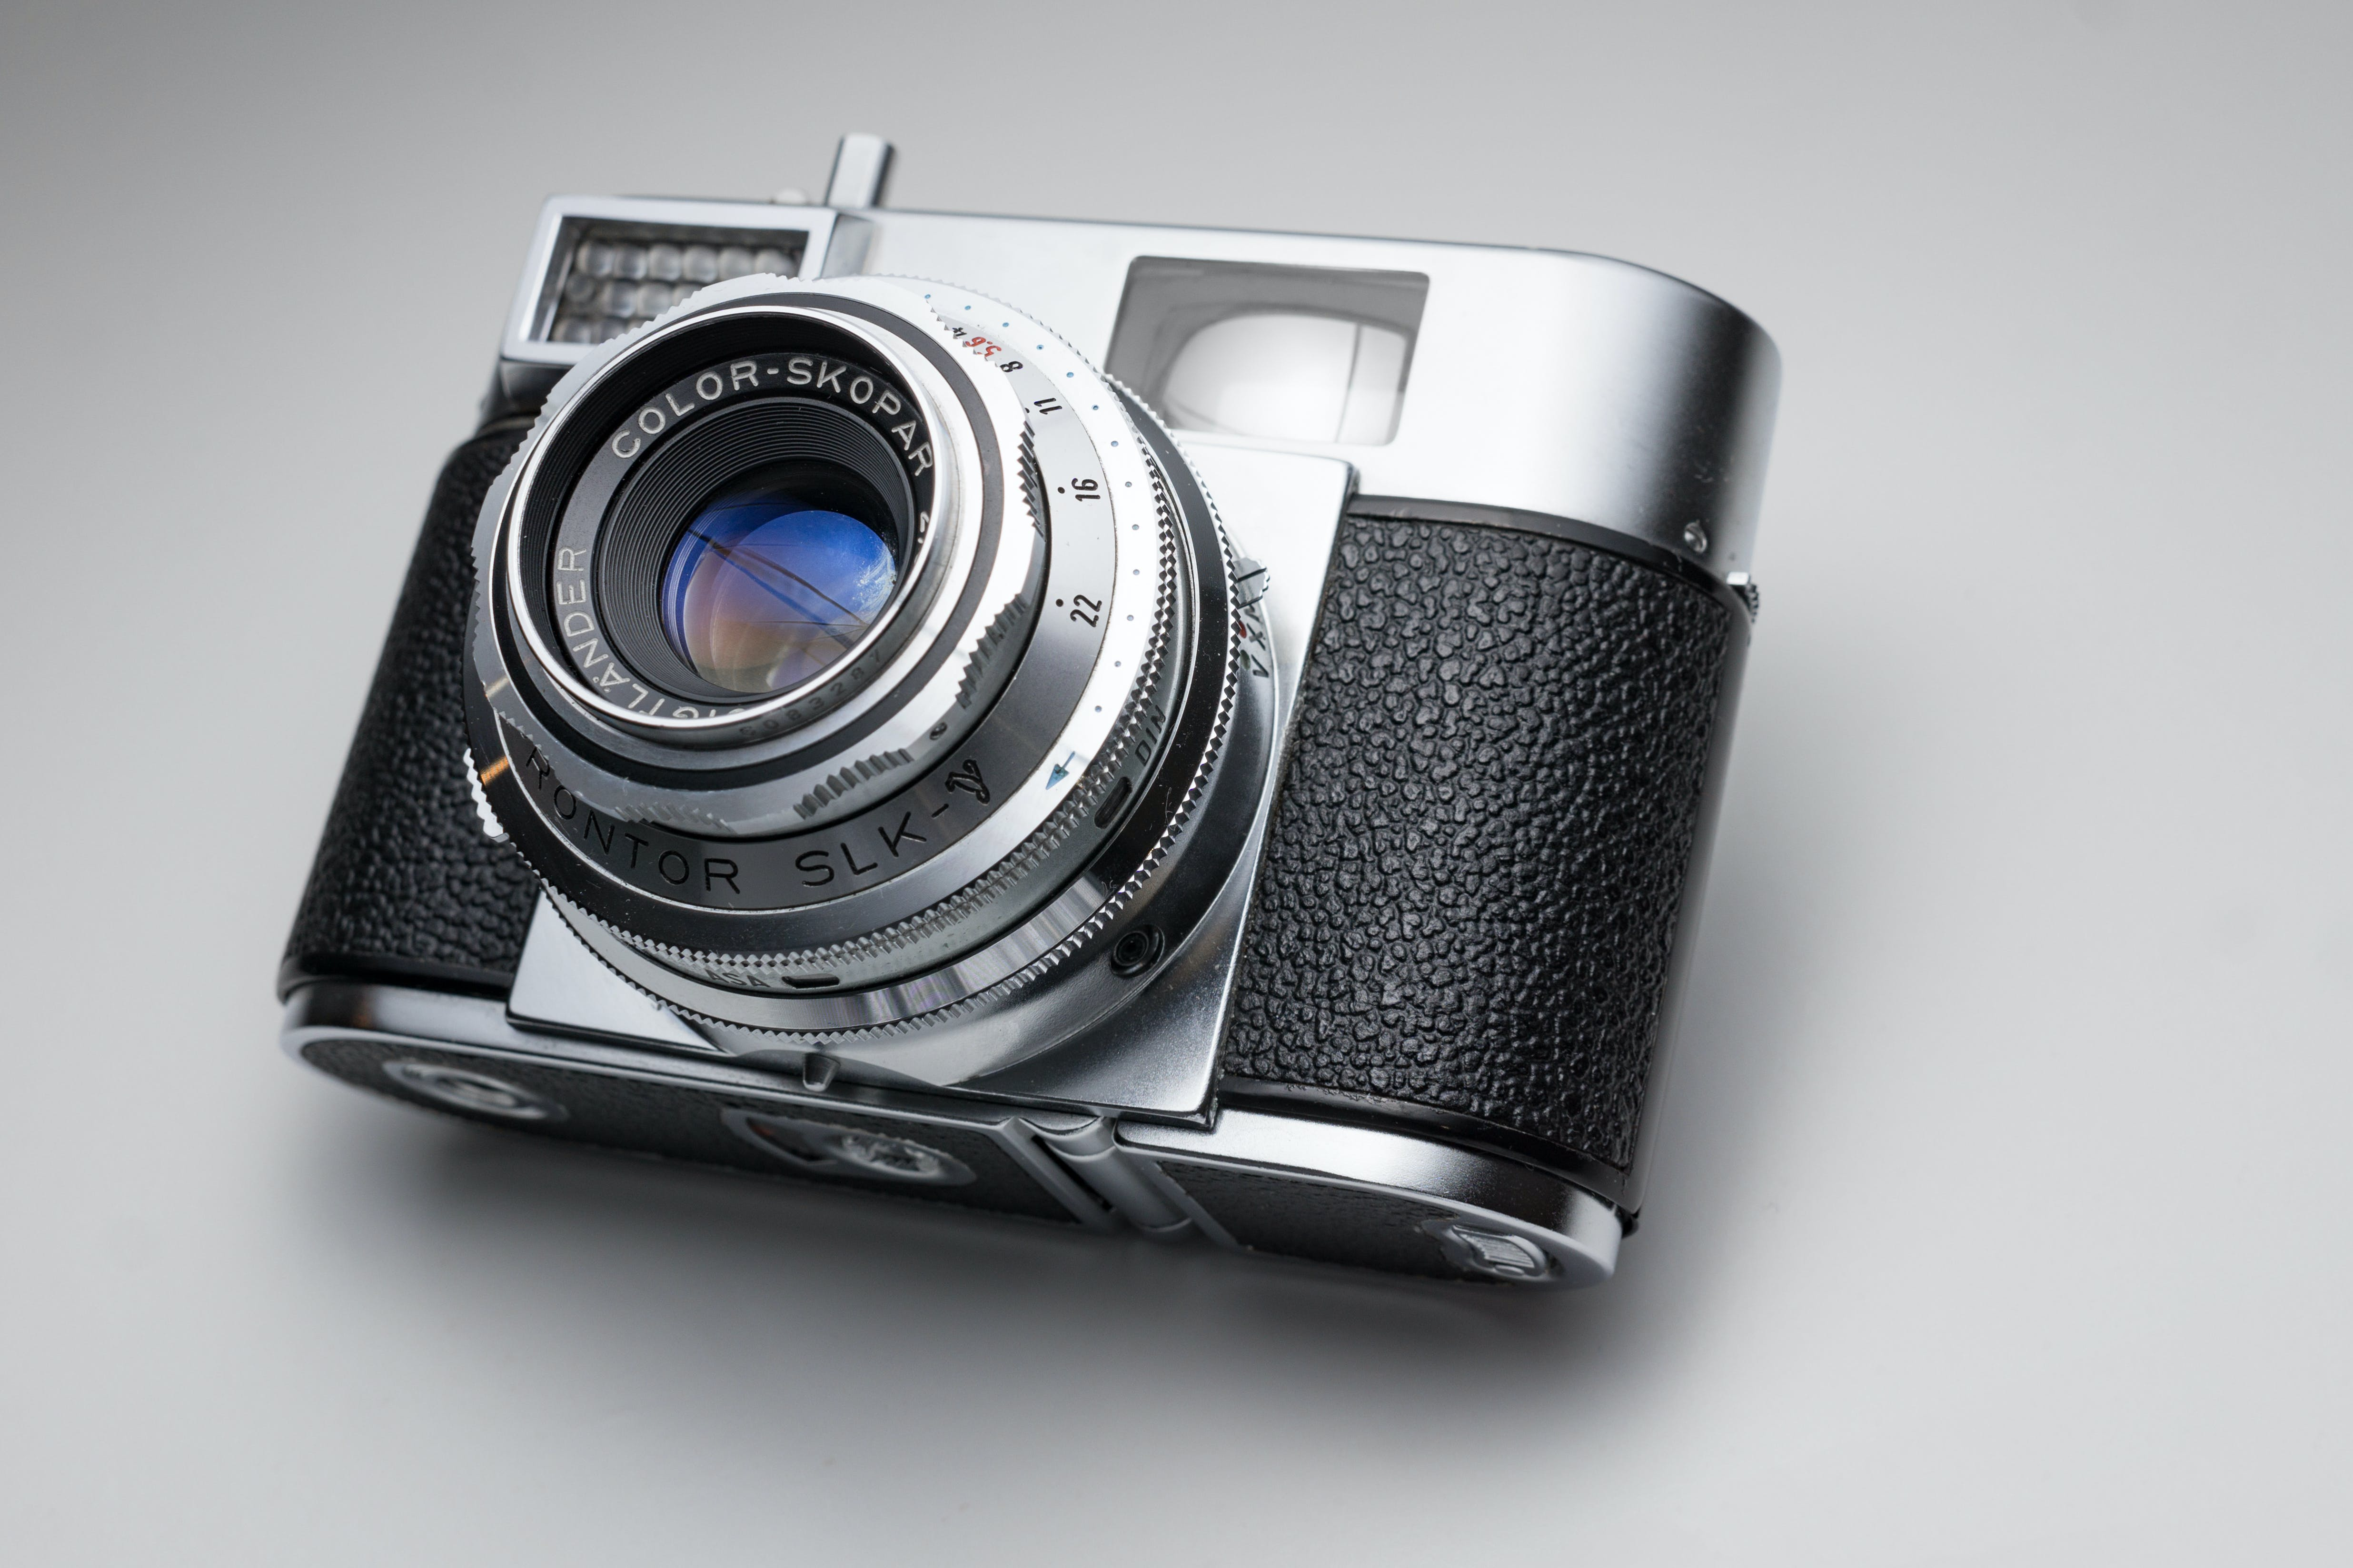 Silver and Black Point-and-shoot Camera